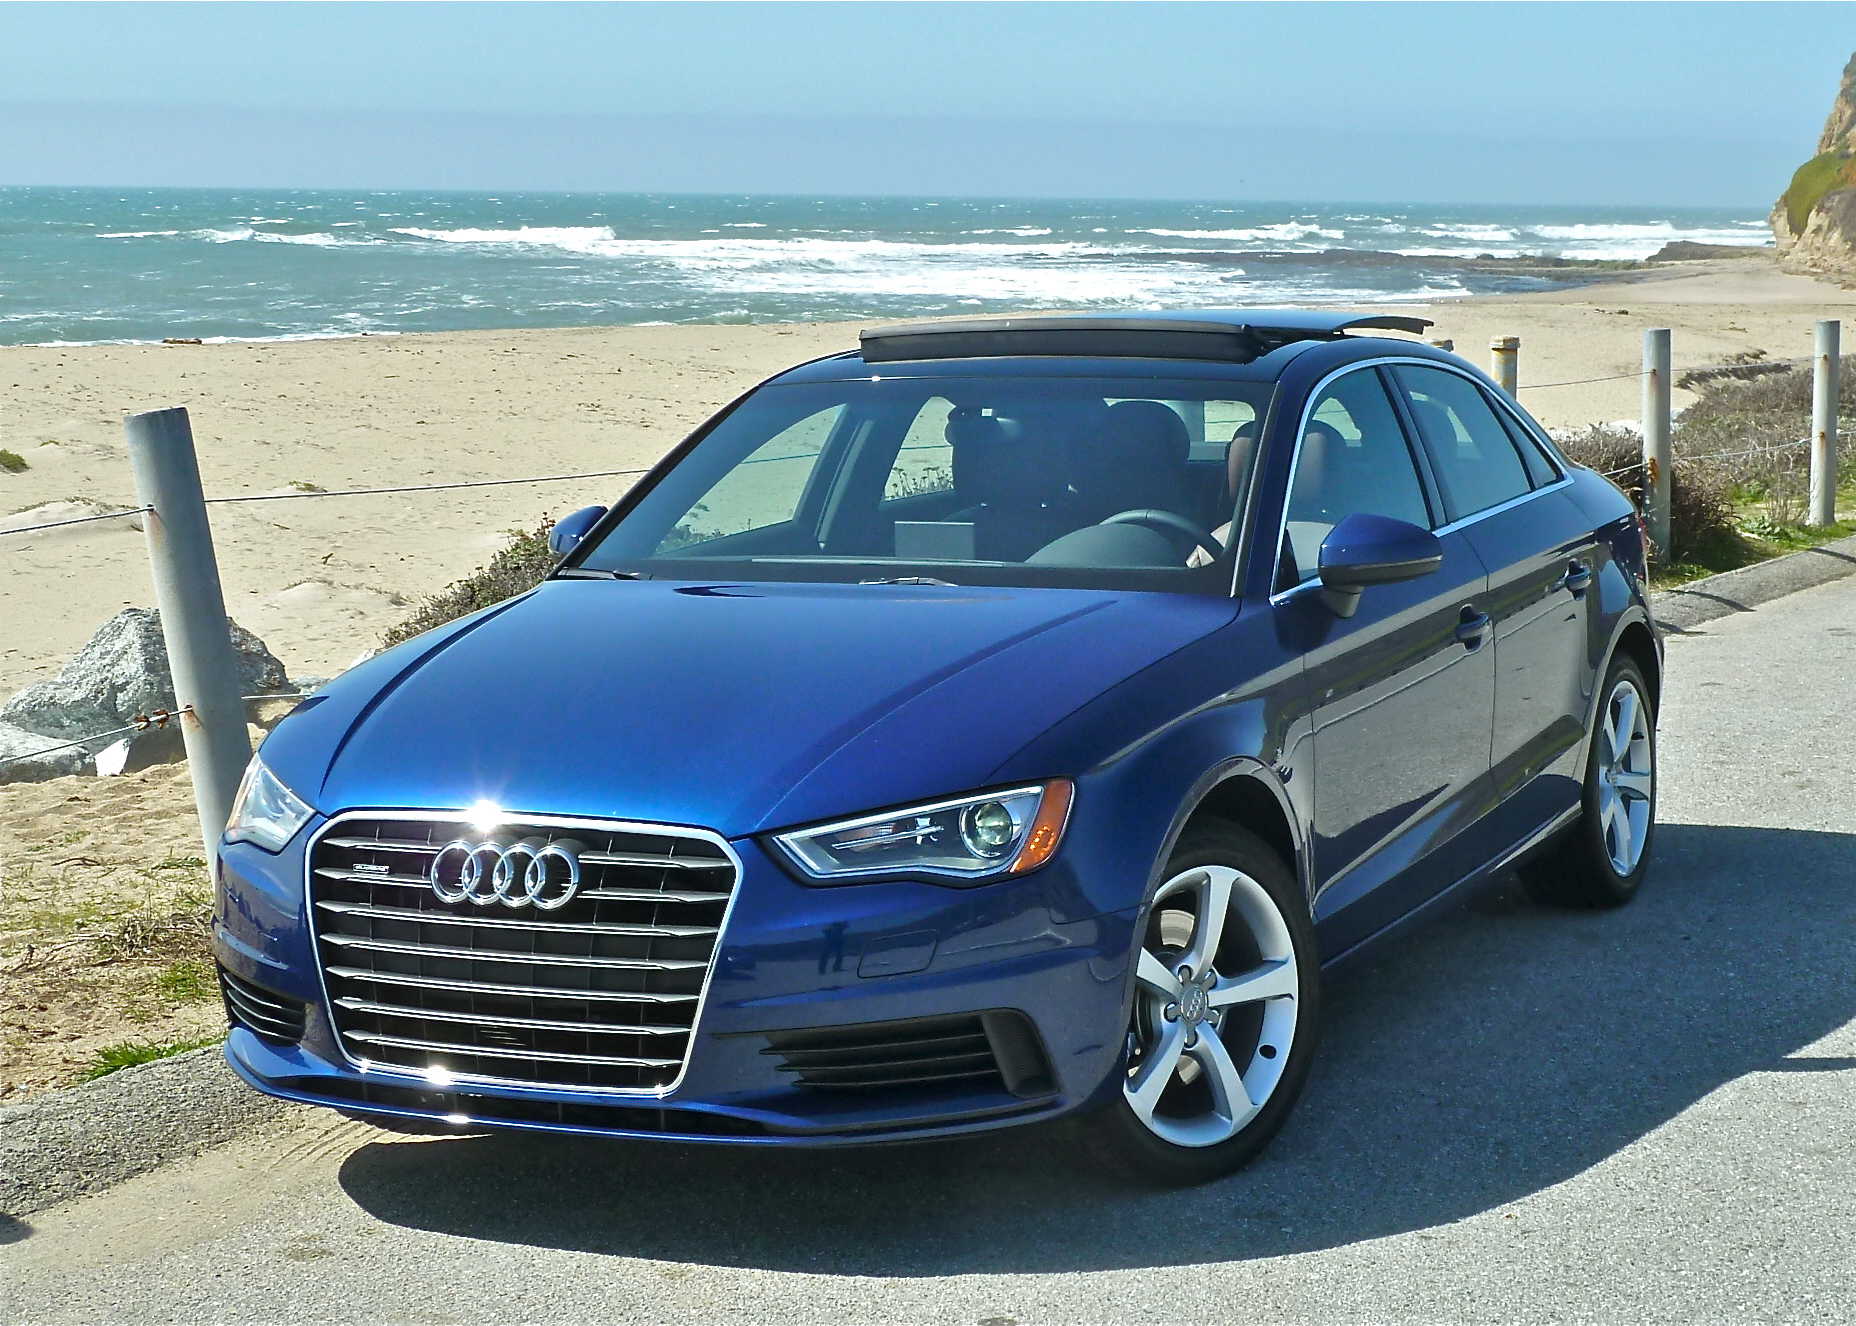 Audi A3 line includes a 4-door sedan for 2015.